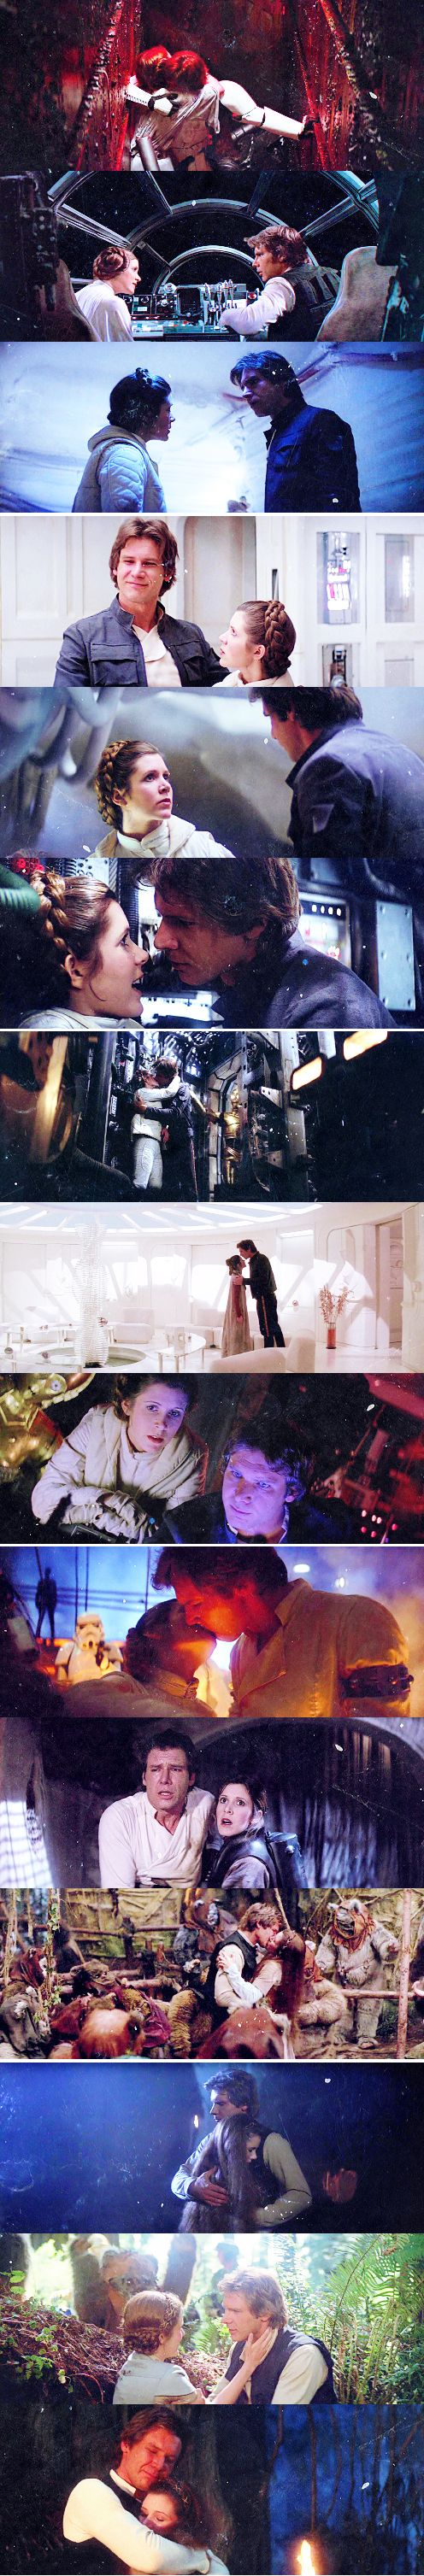 Han Solo and Princess Leia - What do you fangirls say, again? Oh, right. I SHIP THIS.